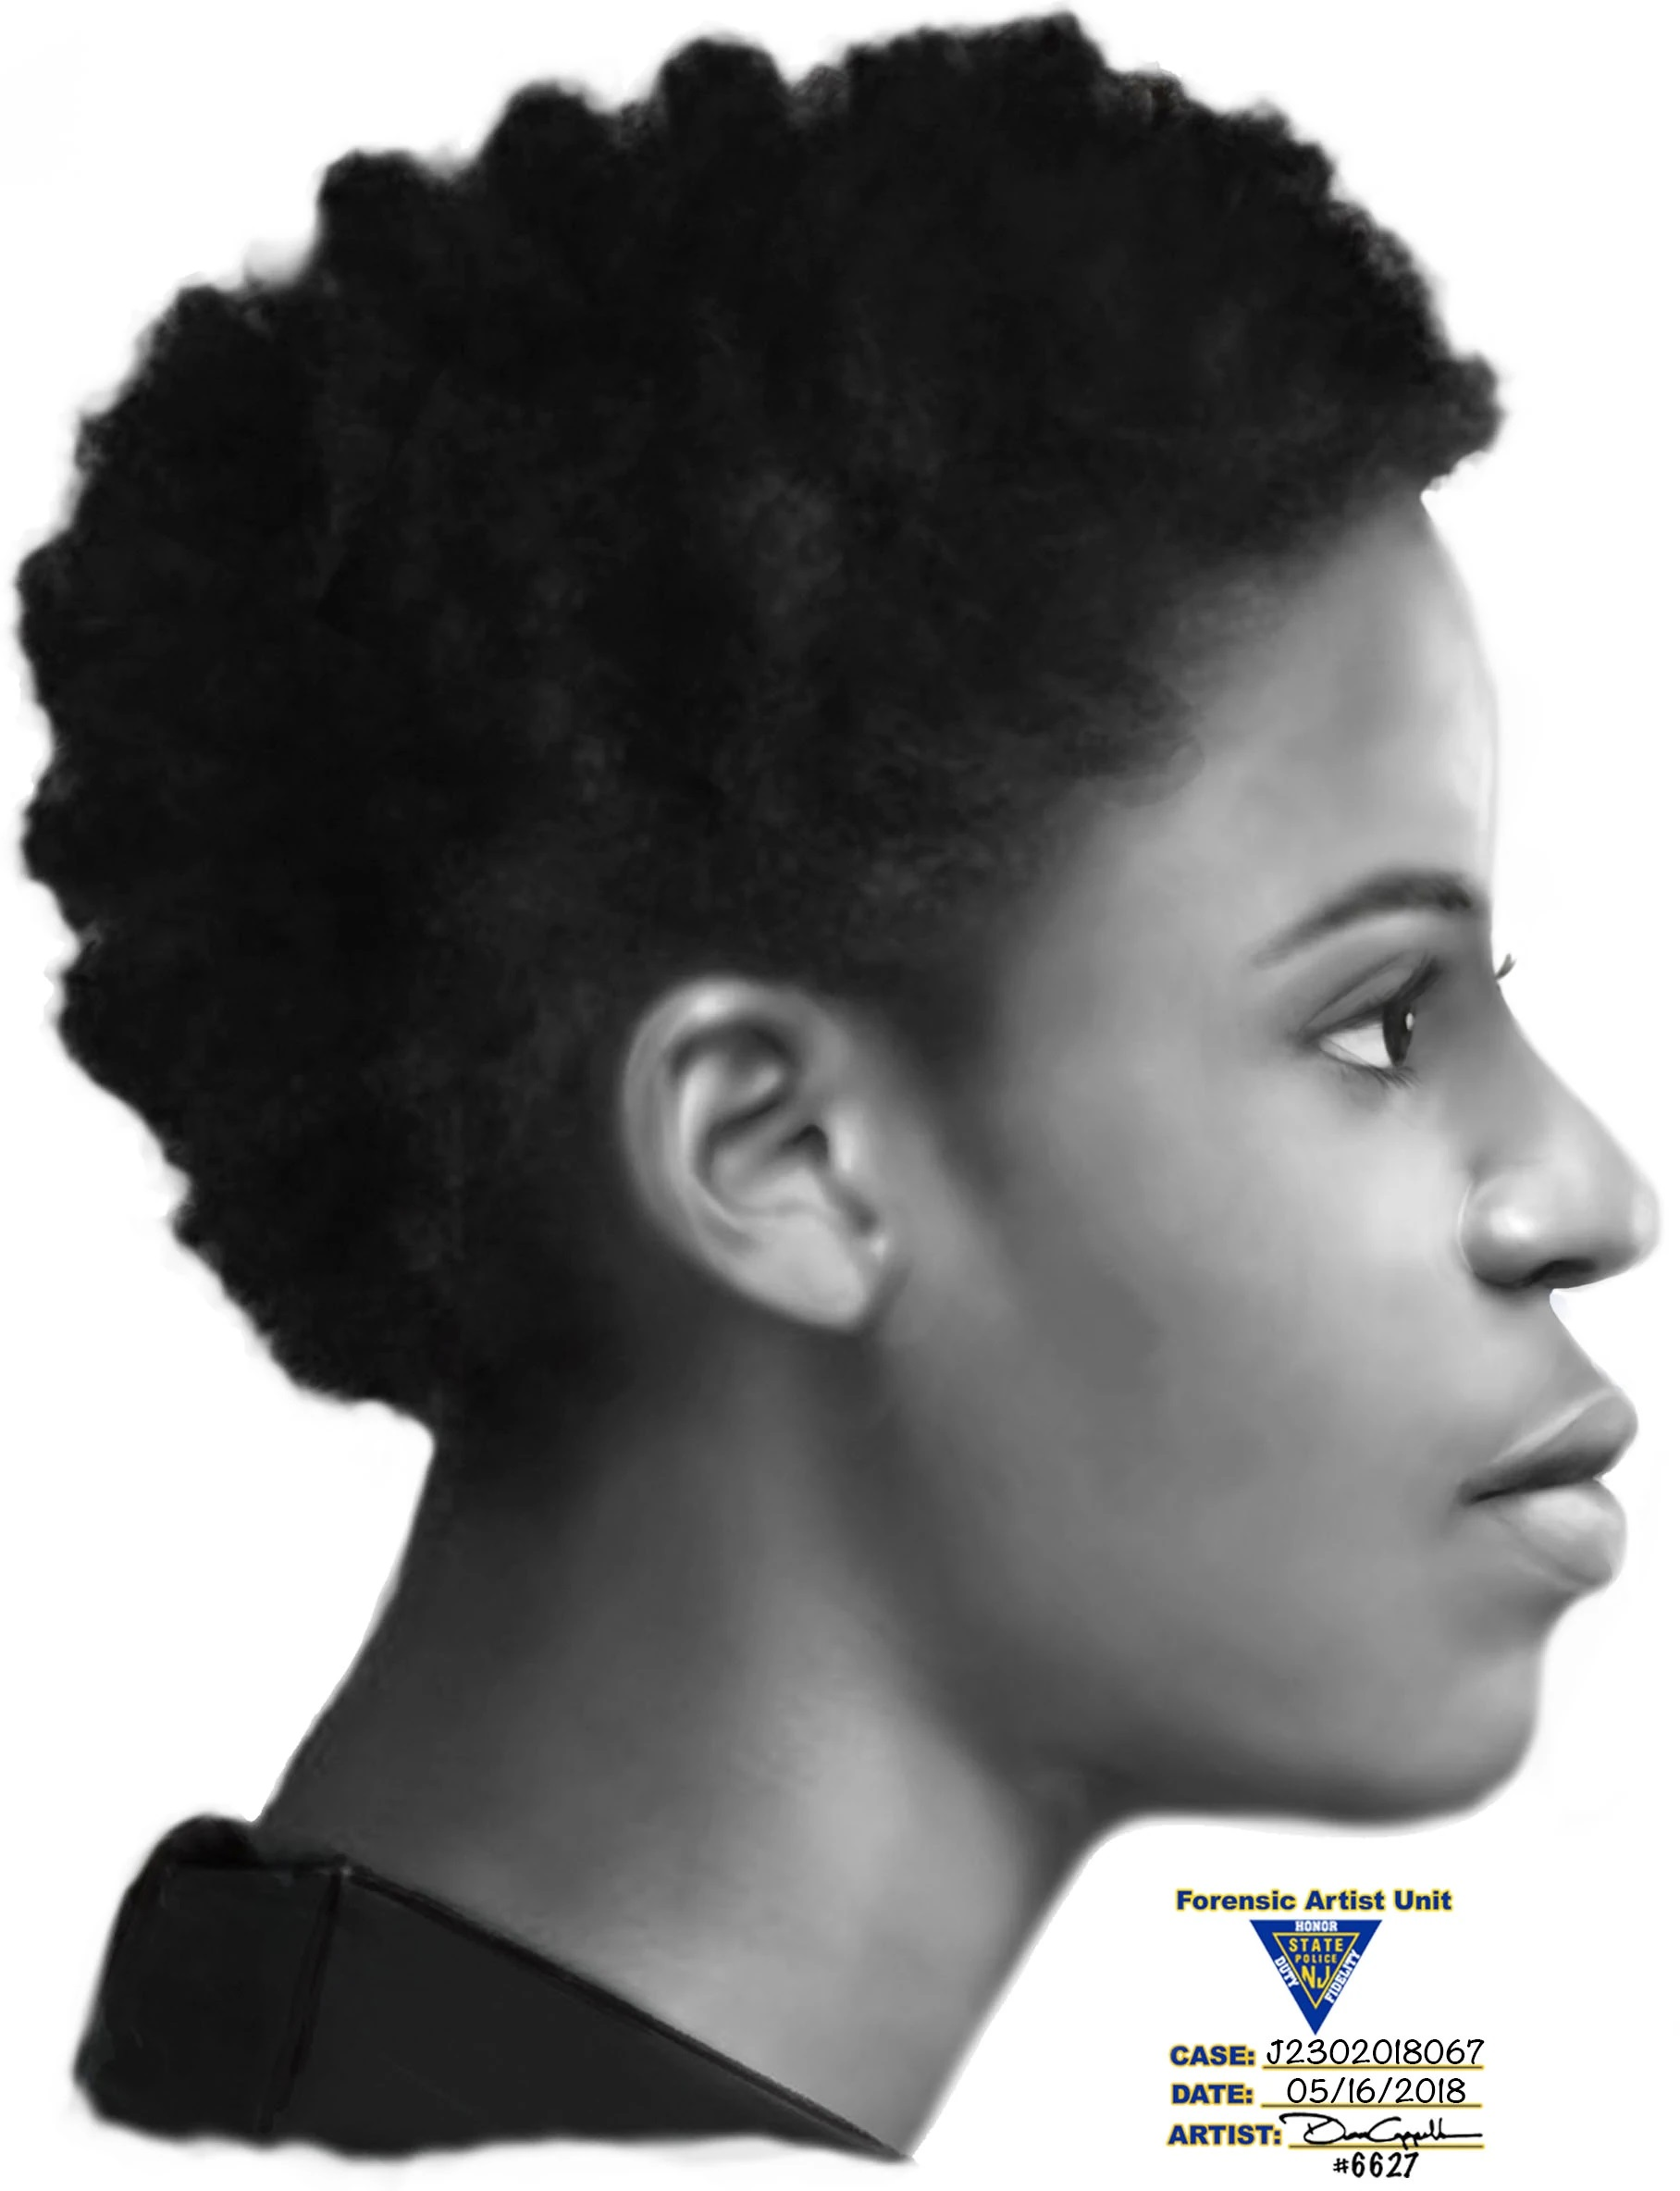 Atlantic County Jane Doe (1988)